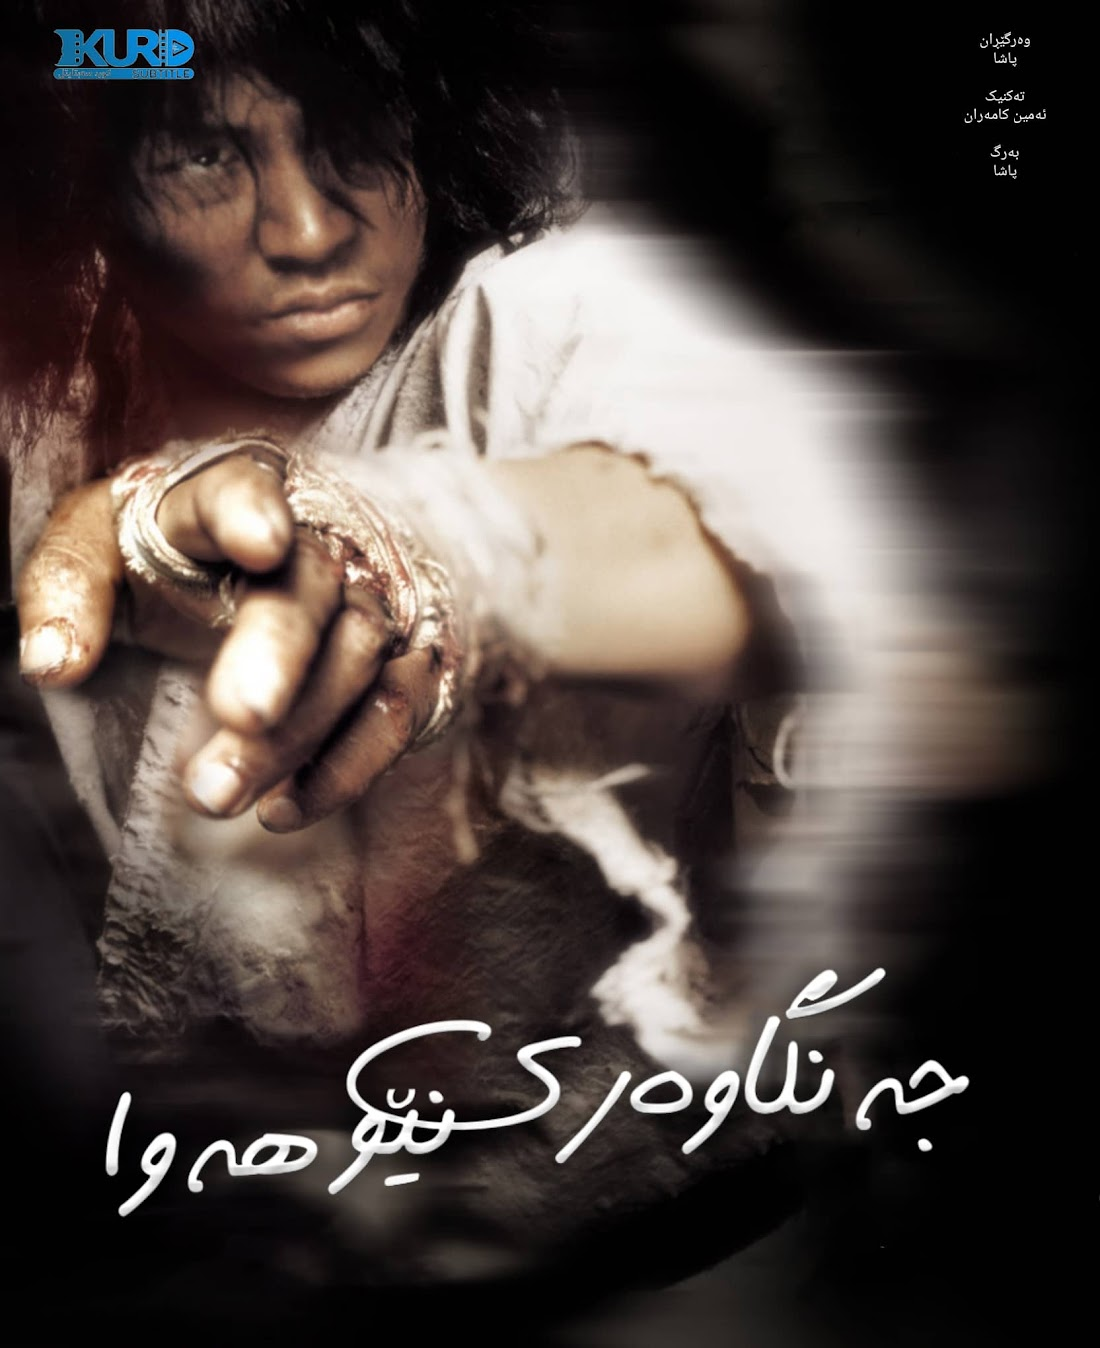 Fighter in the Wind kurdish poster